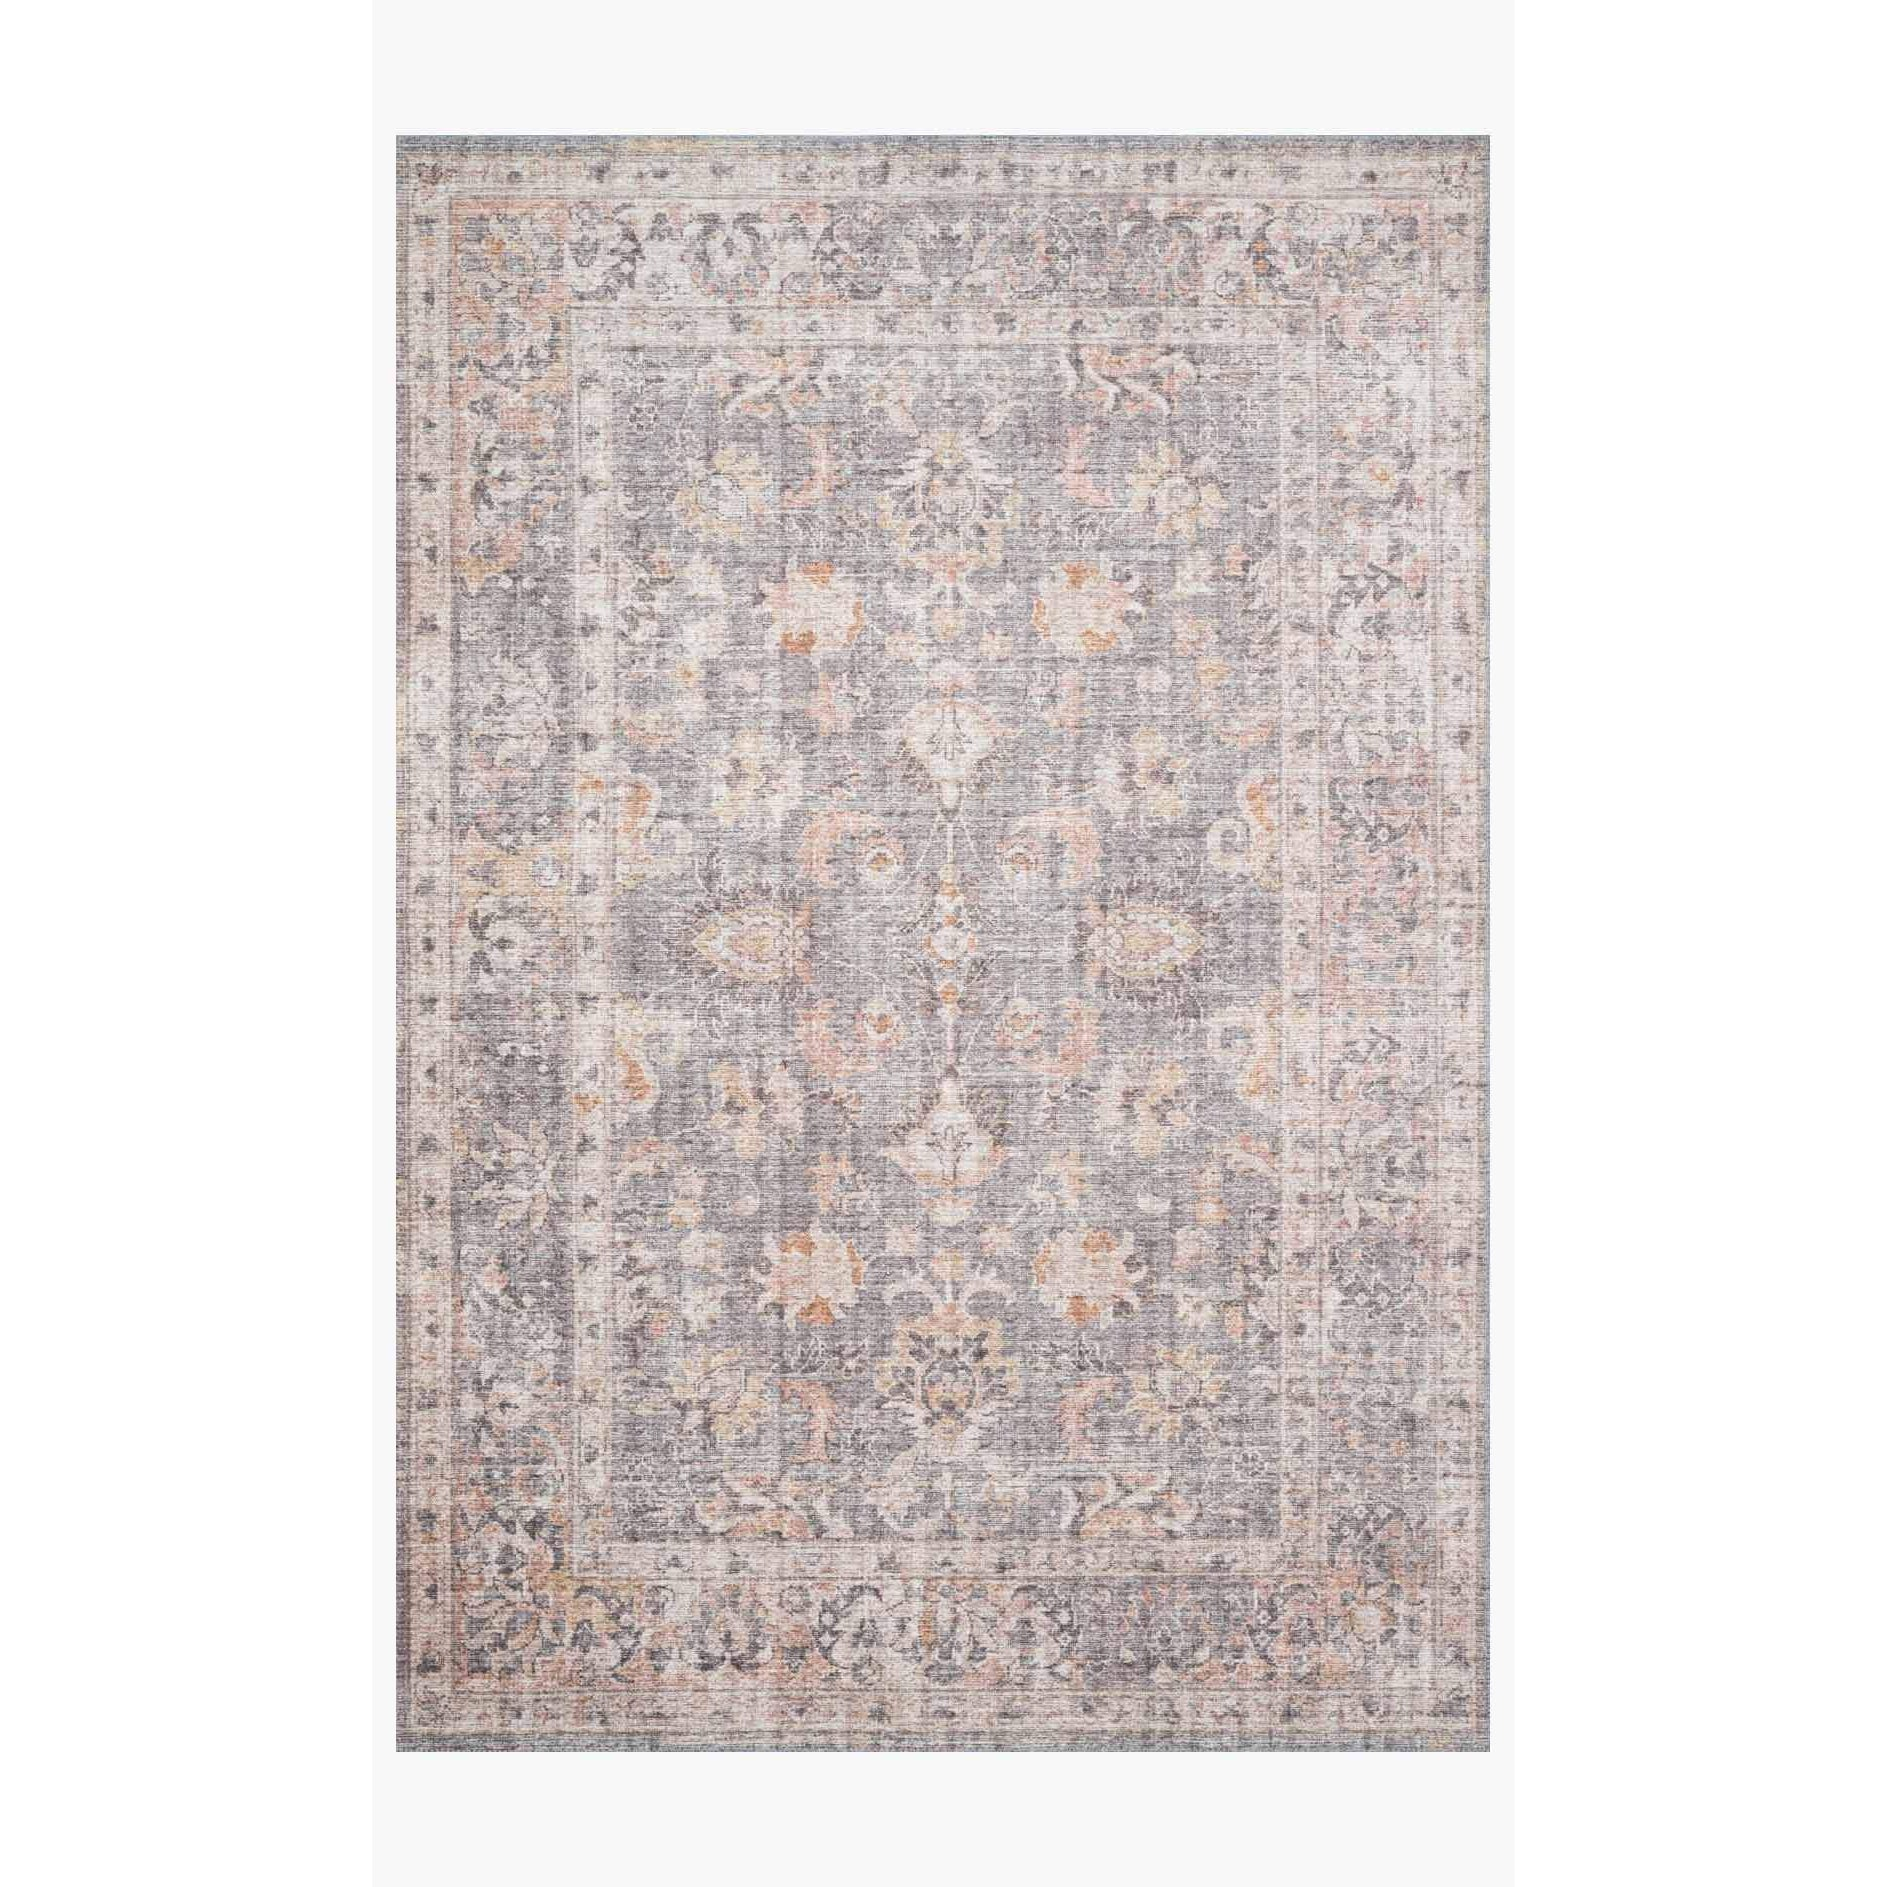 Skye Rug Collection by Loloi -Sky 01-Grey/Apricot